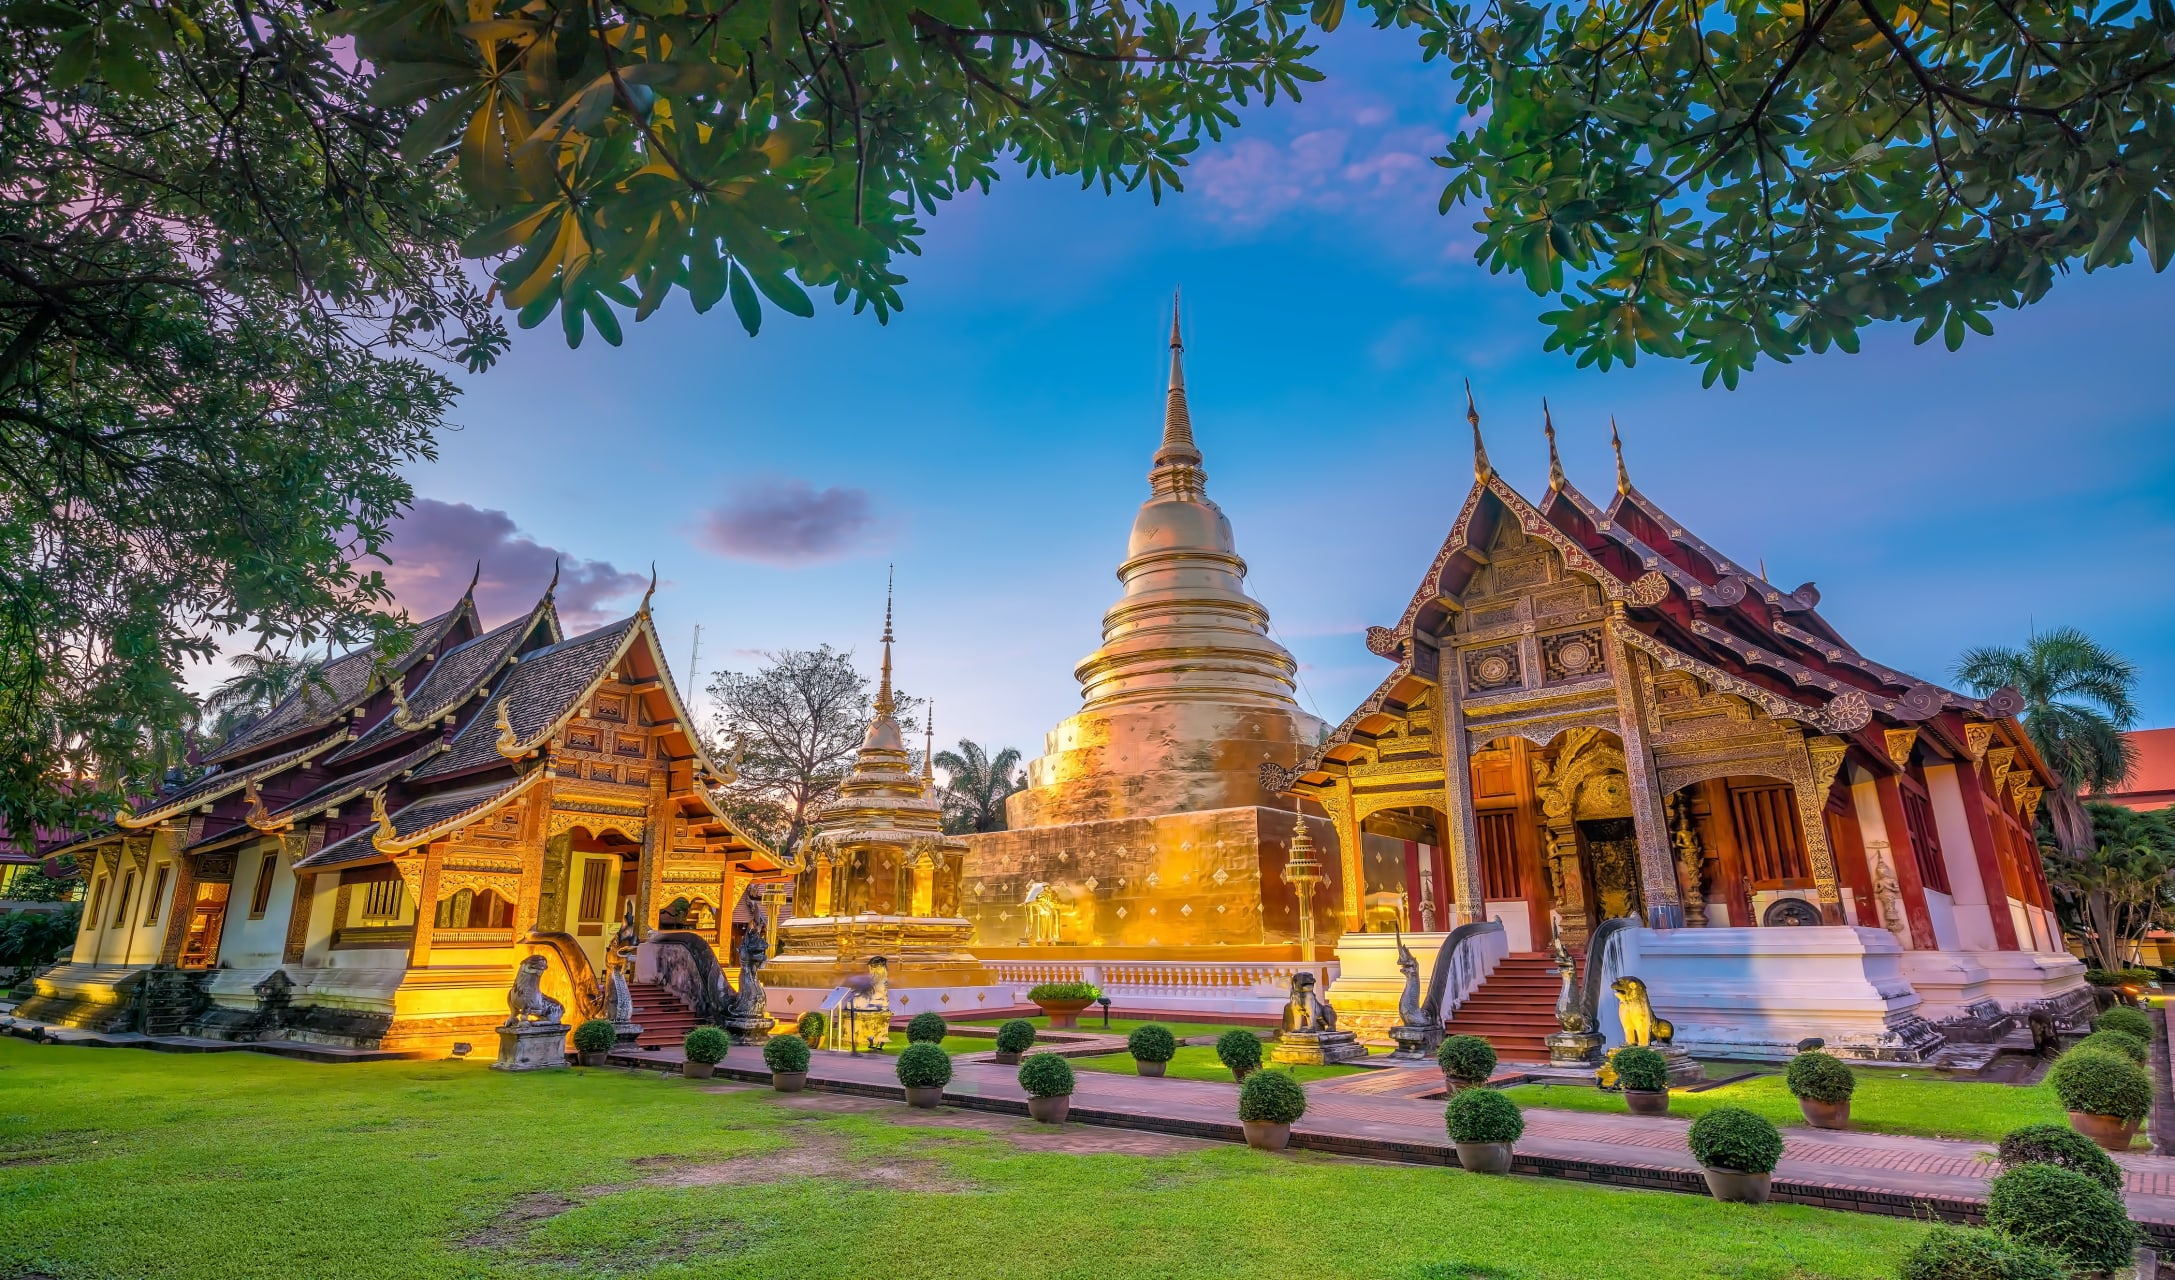 Chiang Mai - Wat Phra Sing, the Most Significant Temple of Lanna